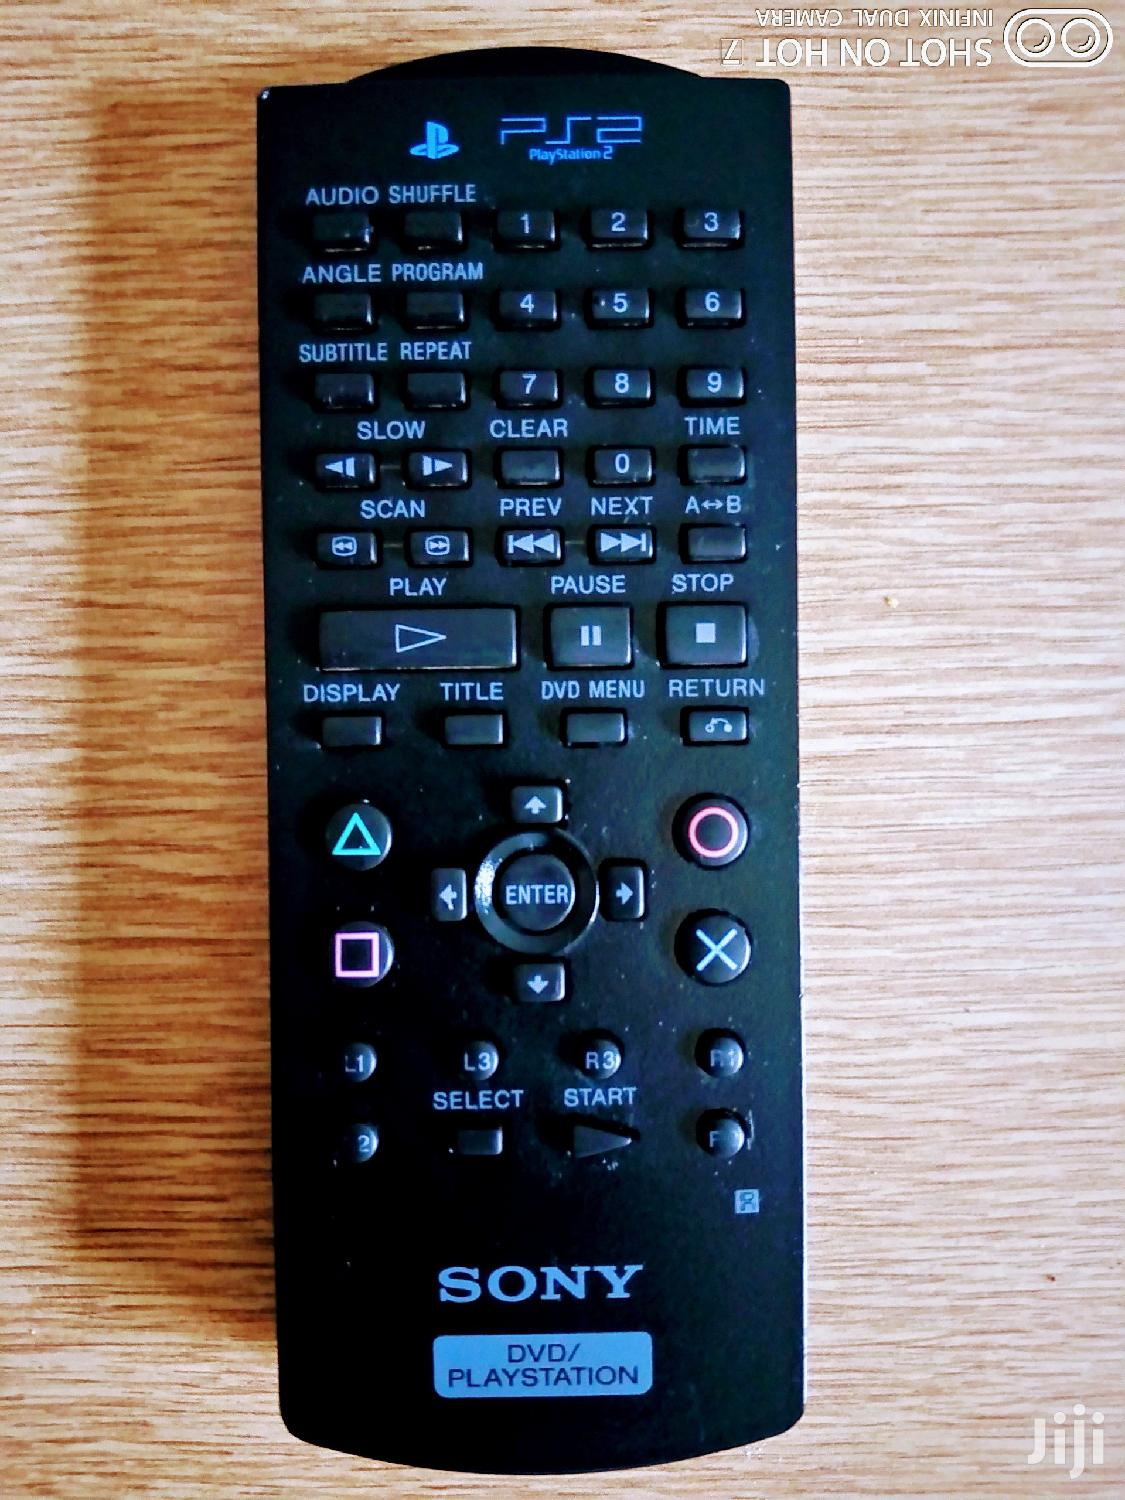 Sony Playstation 2 Remote | Video Game Consoles for sale in Kampala, Central Region, Uganda